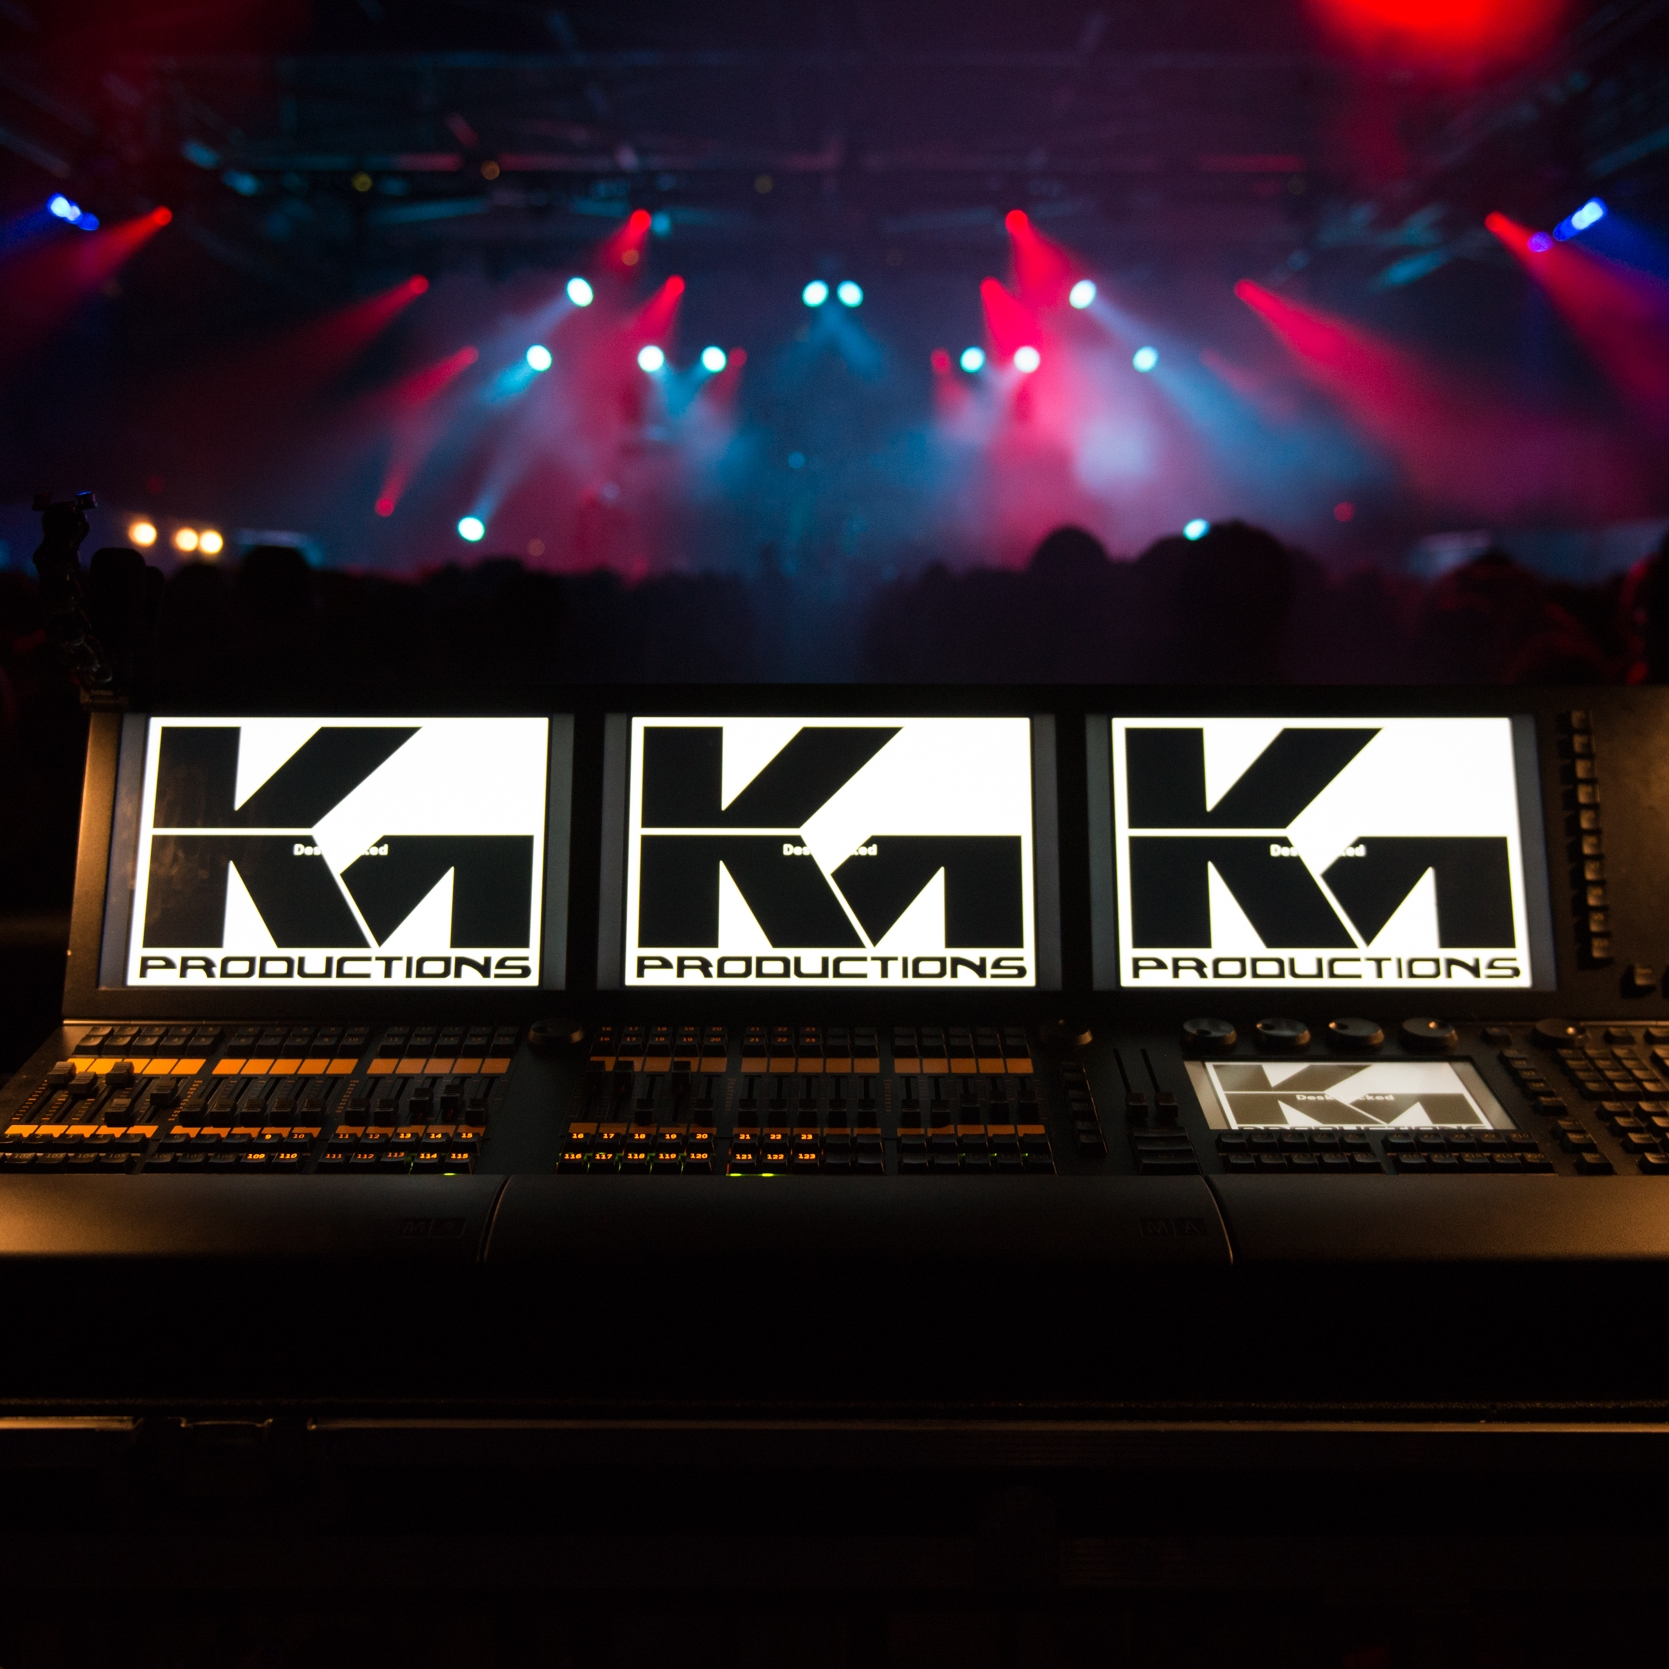 lighting_console_consoles